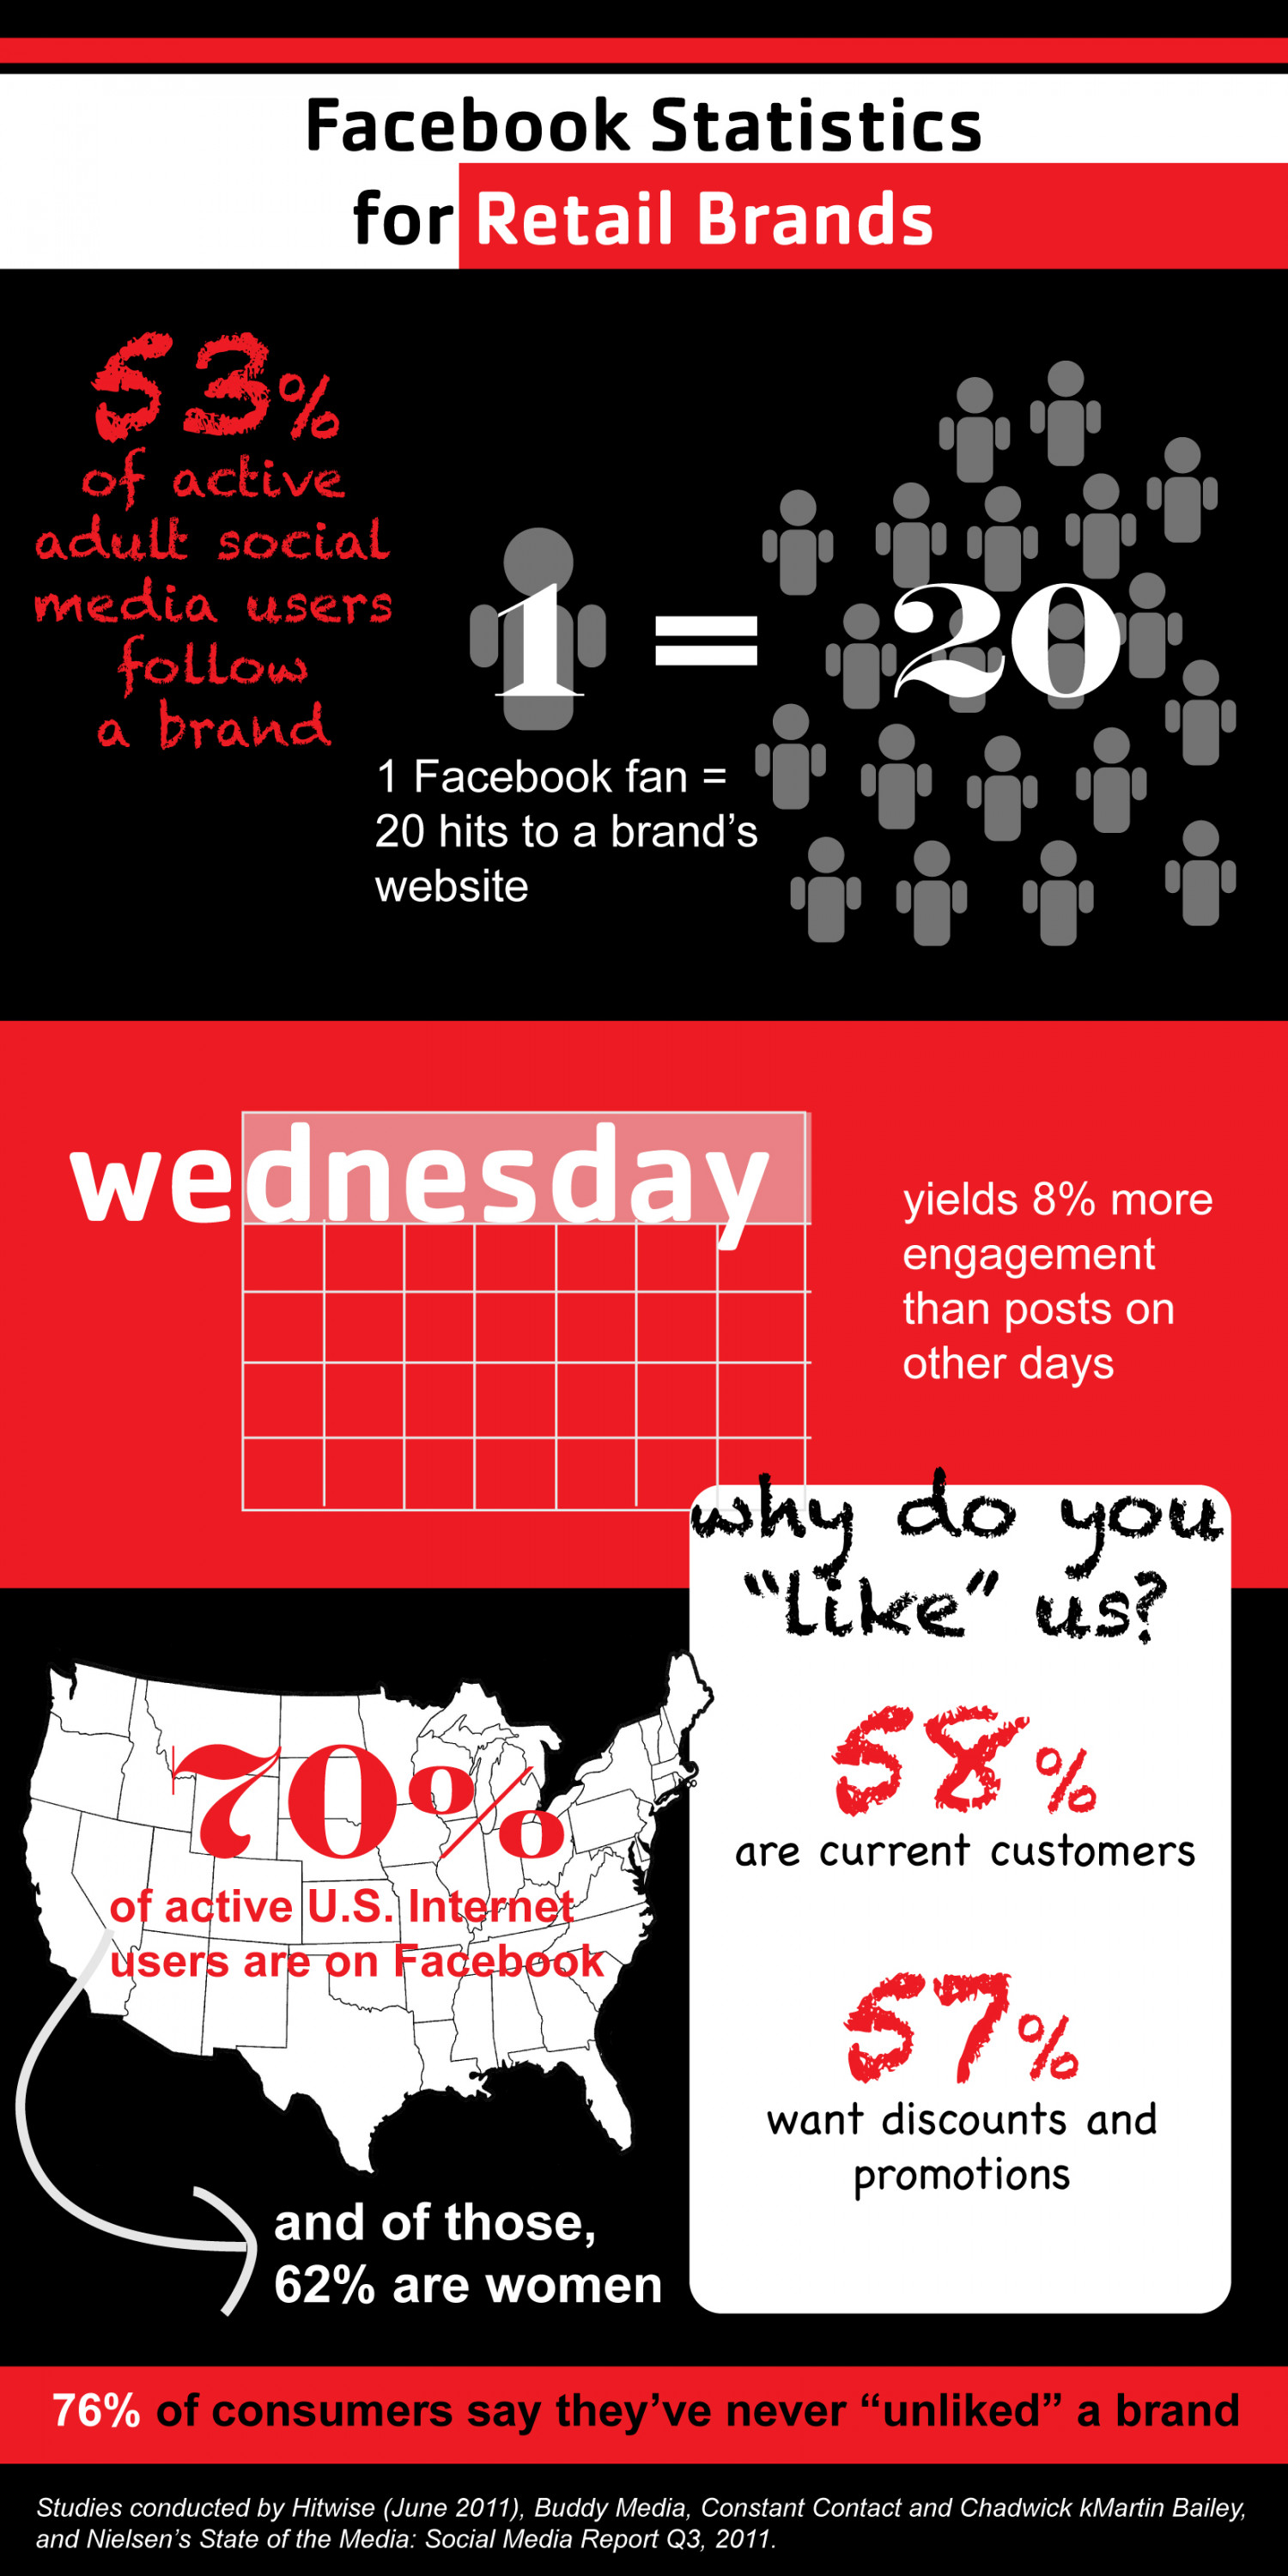 Facebook Statistics for Retail Brands Infographic